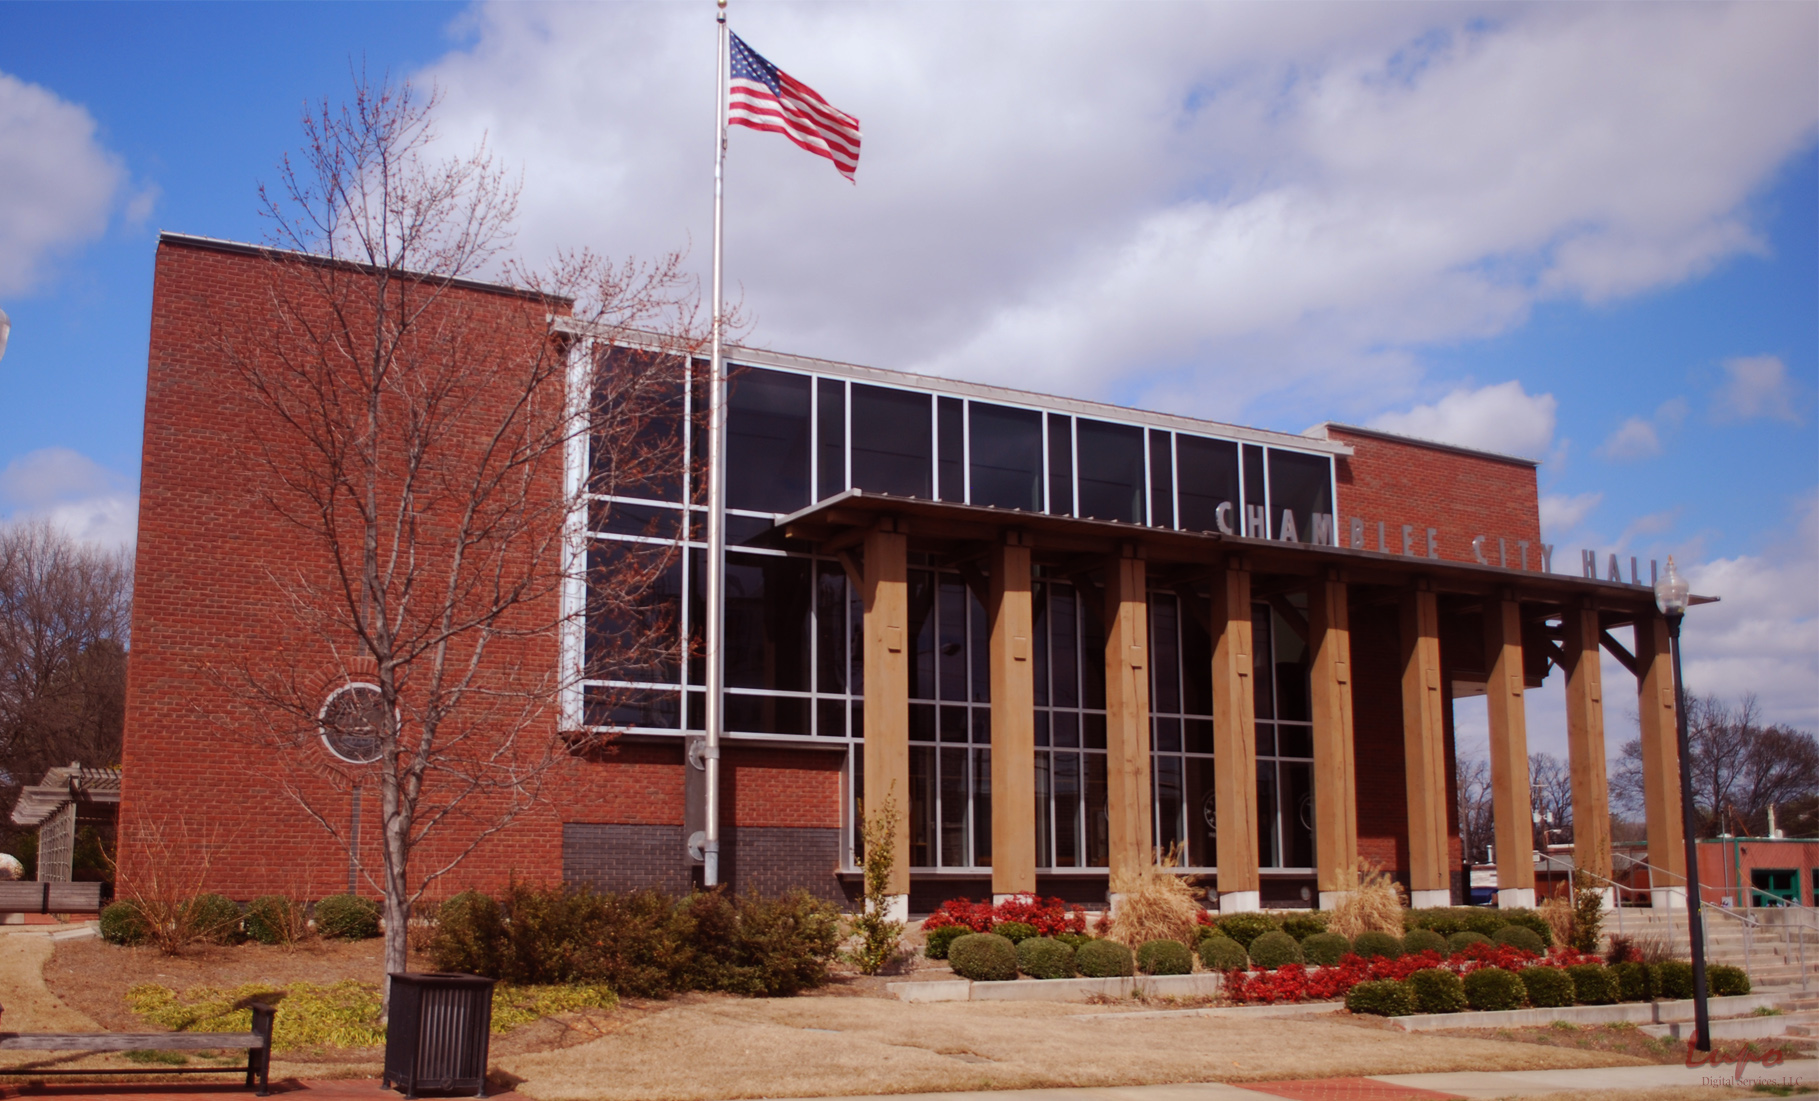 chamblee city hall